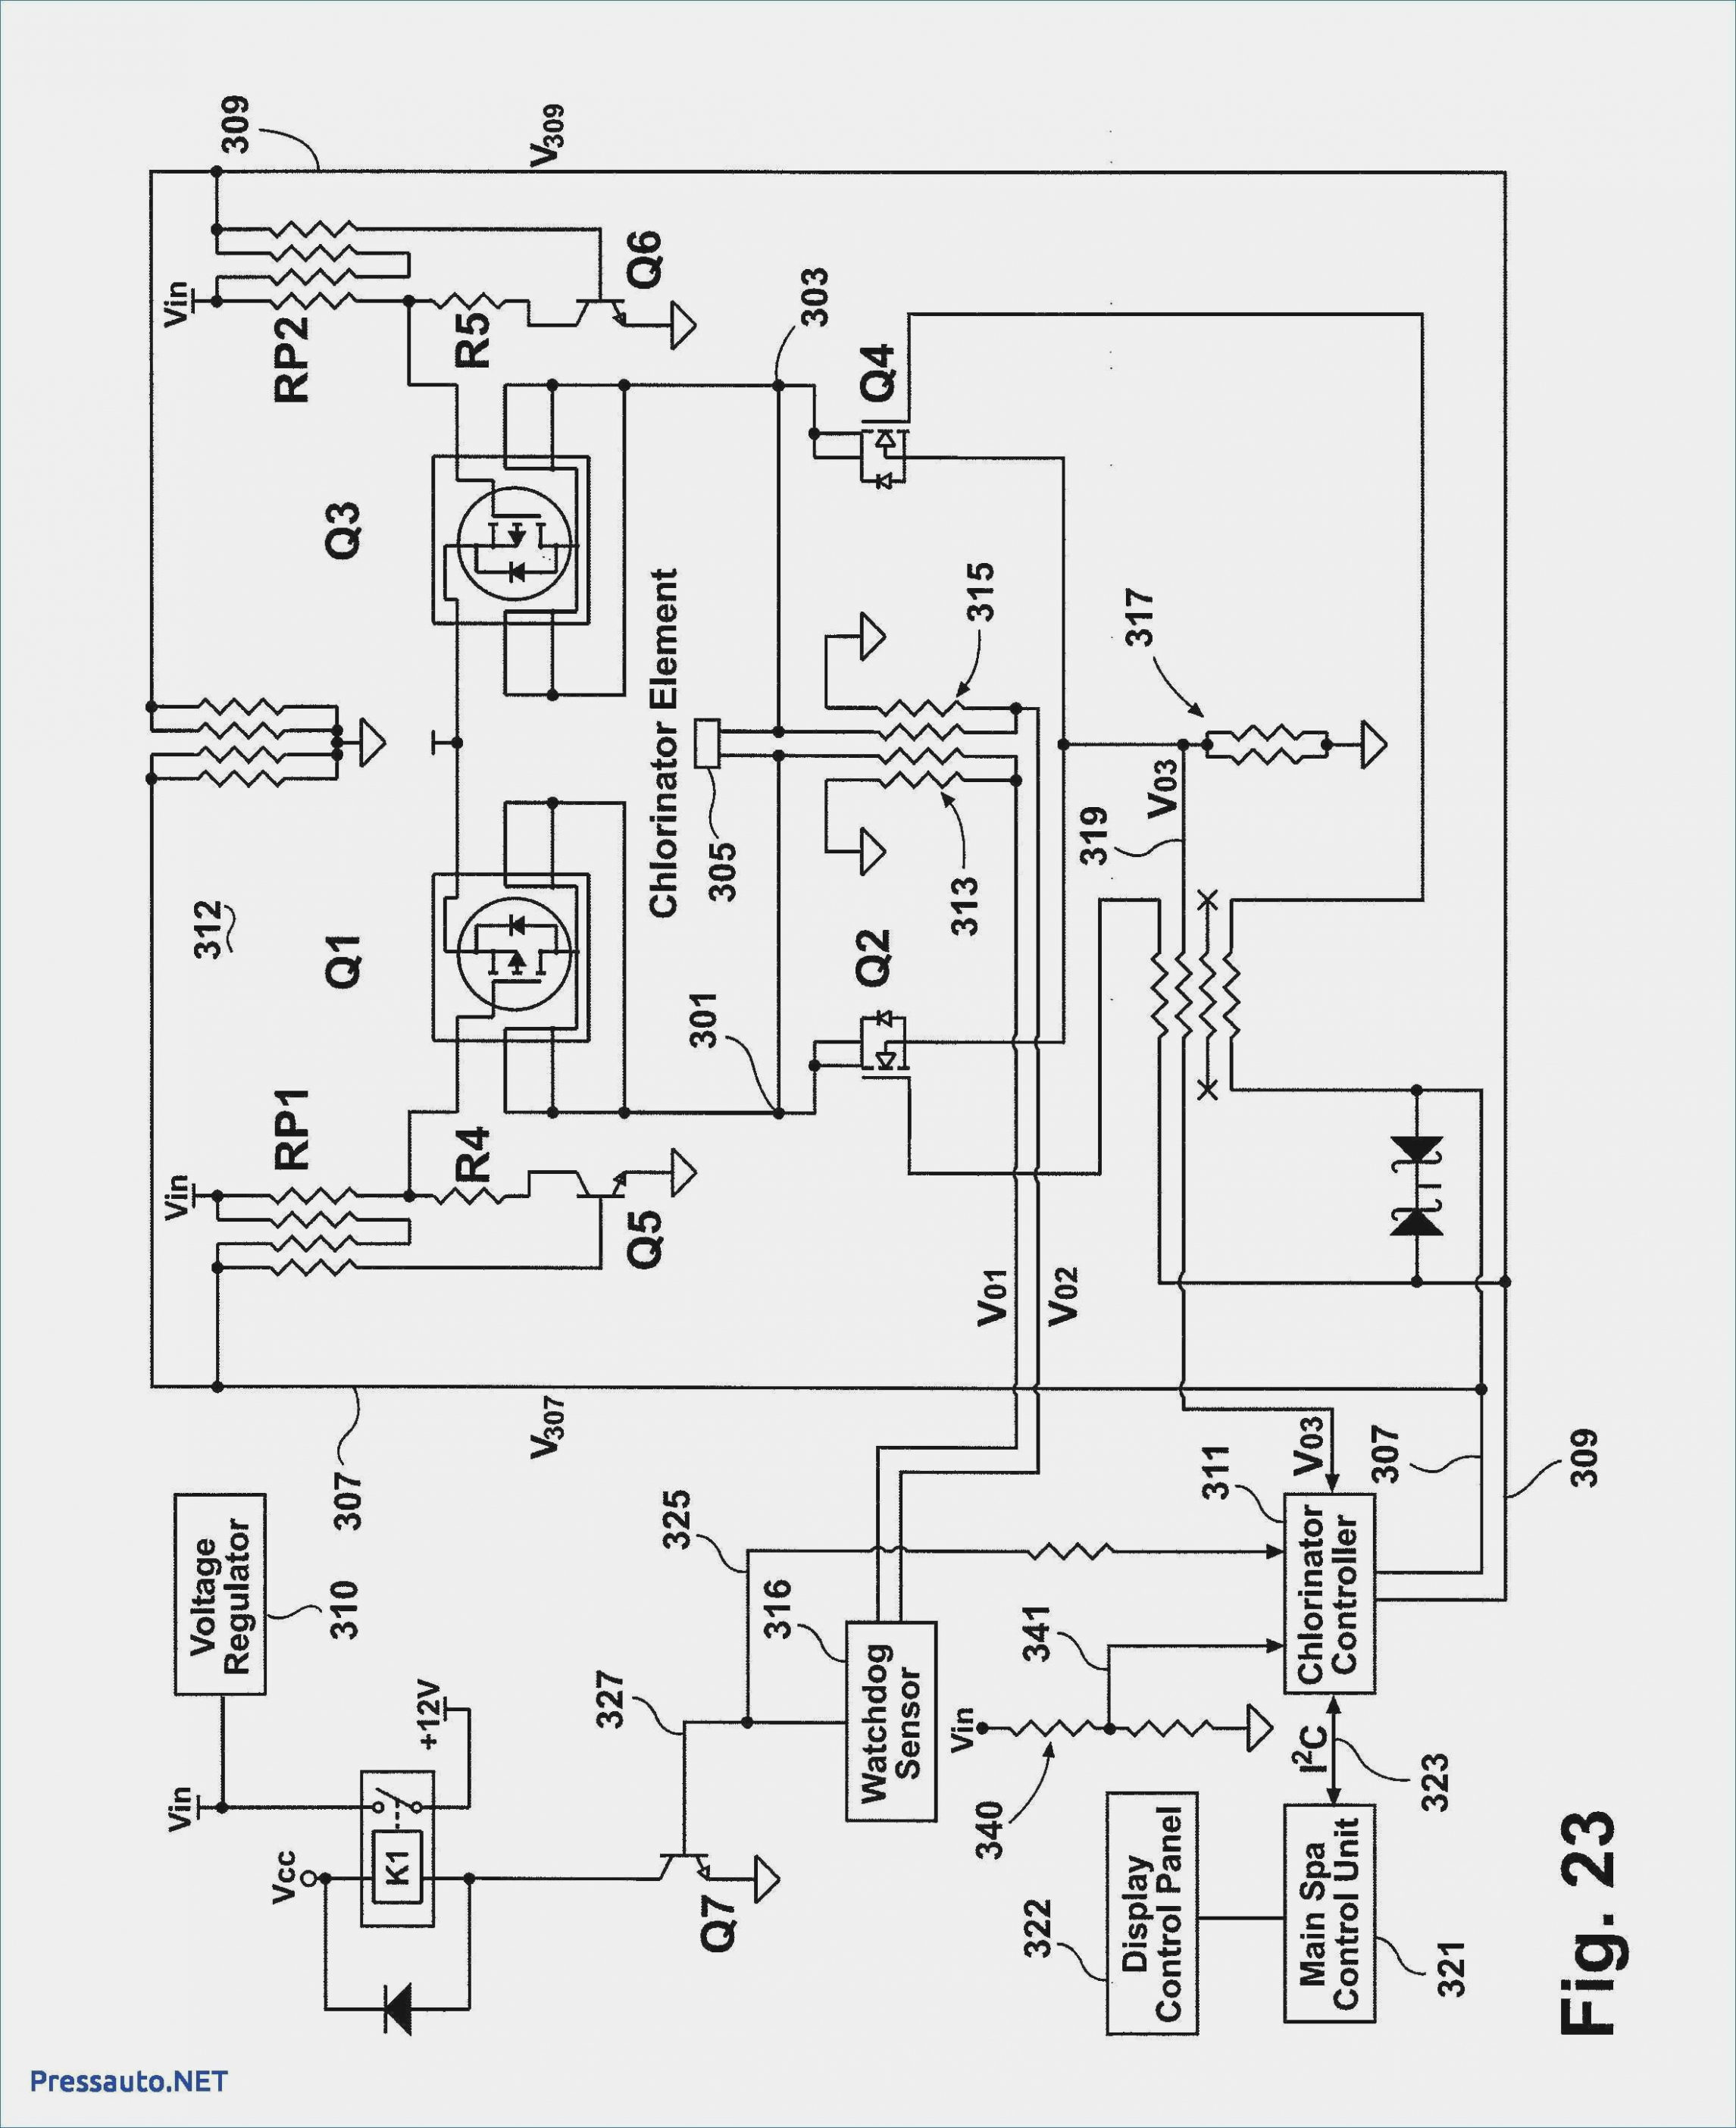 Why 10 Speed Pool Pump Wiring Diagrams | Diagram Information - Pool Pump Wiring Diagram